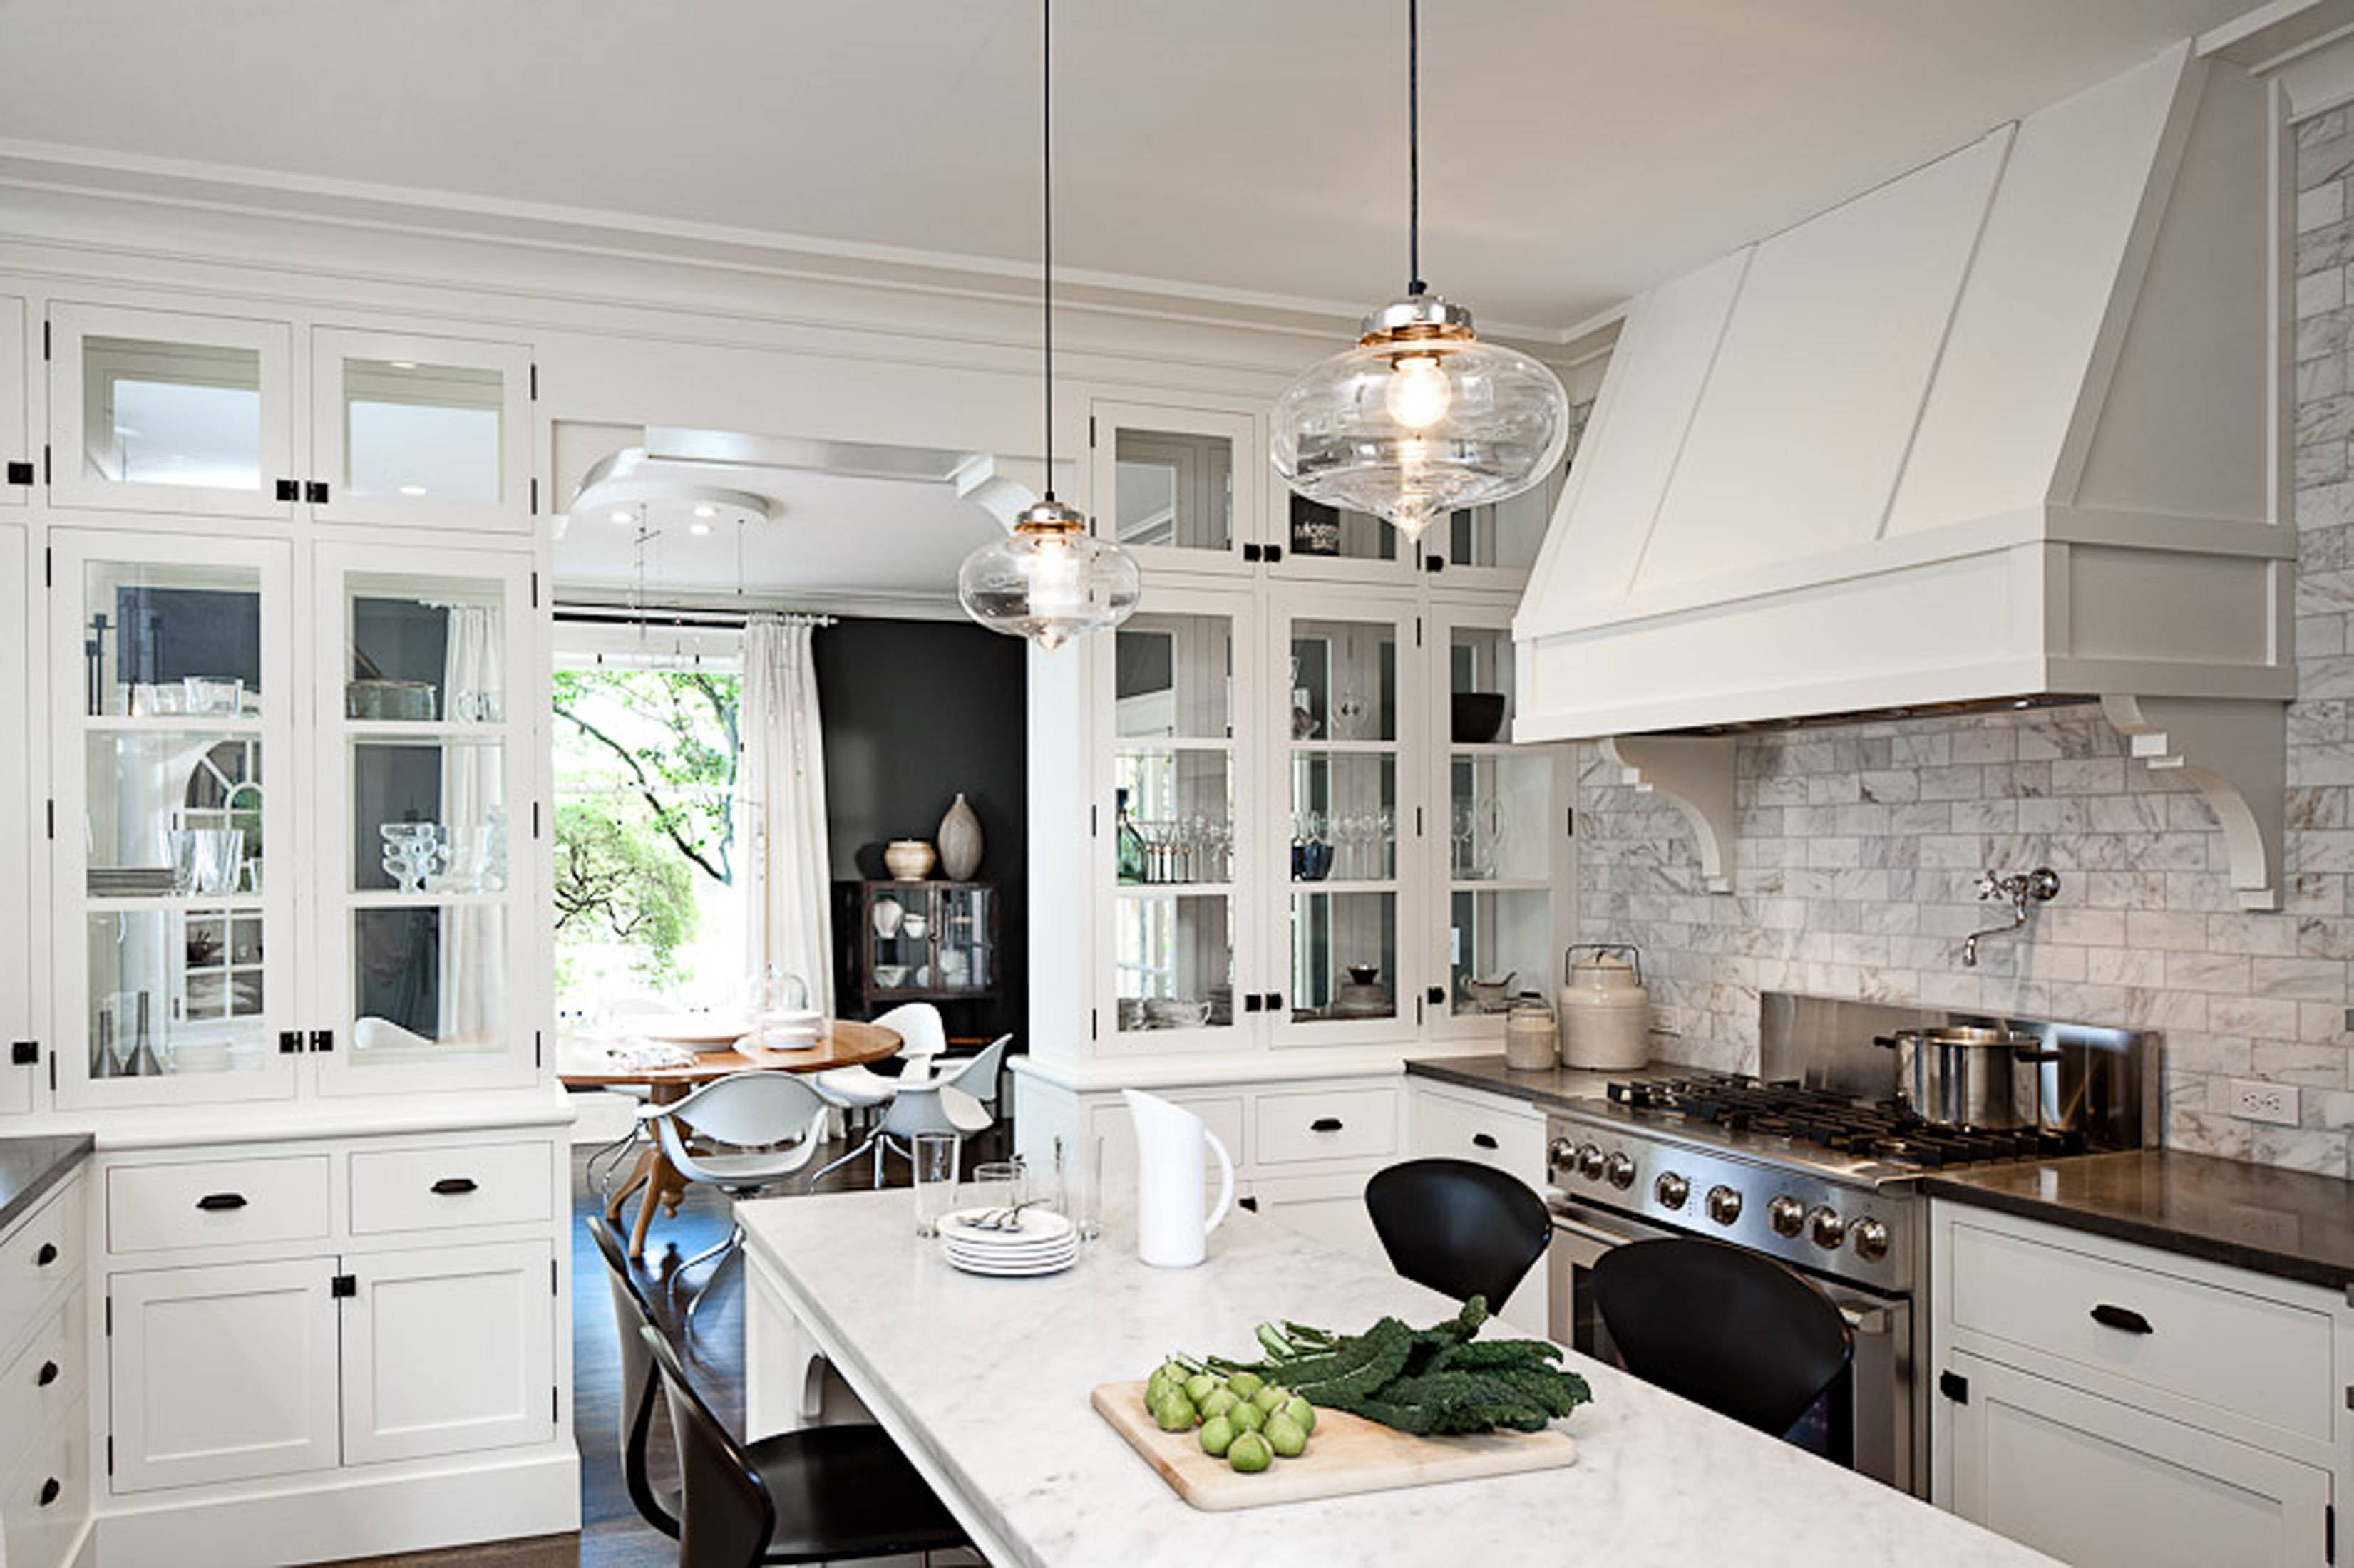 Pendant Lighting Ideas: Kitchen Island Pendant Light Useful Regarding Island Pendant Light Fixtures (View 4 of 15)